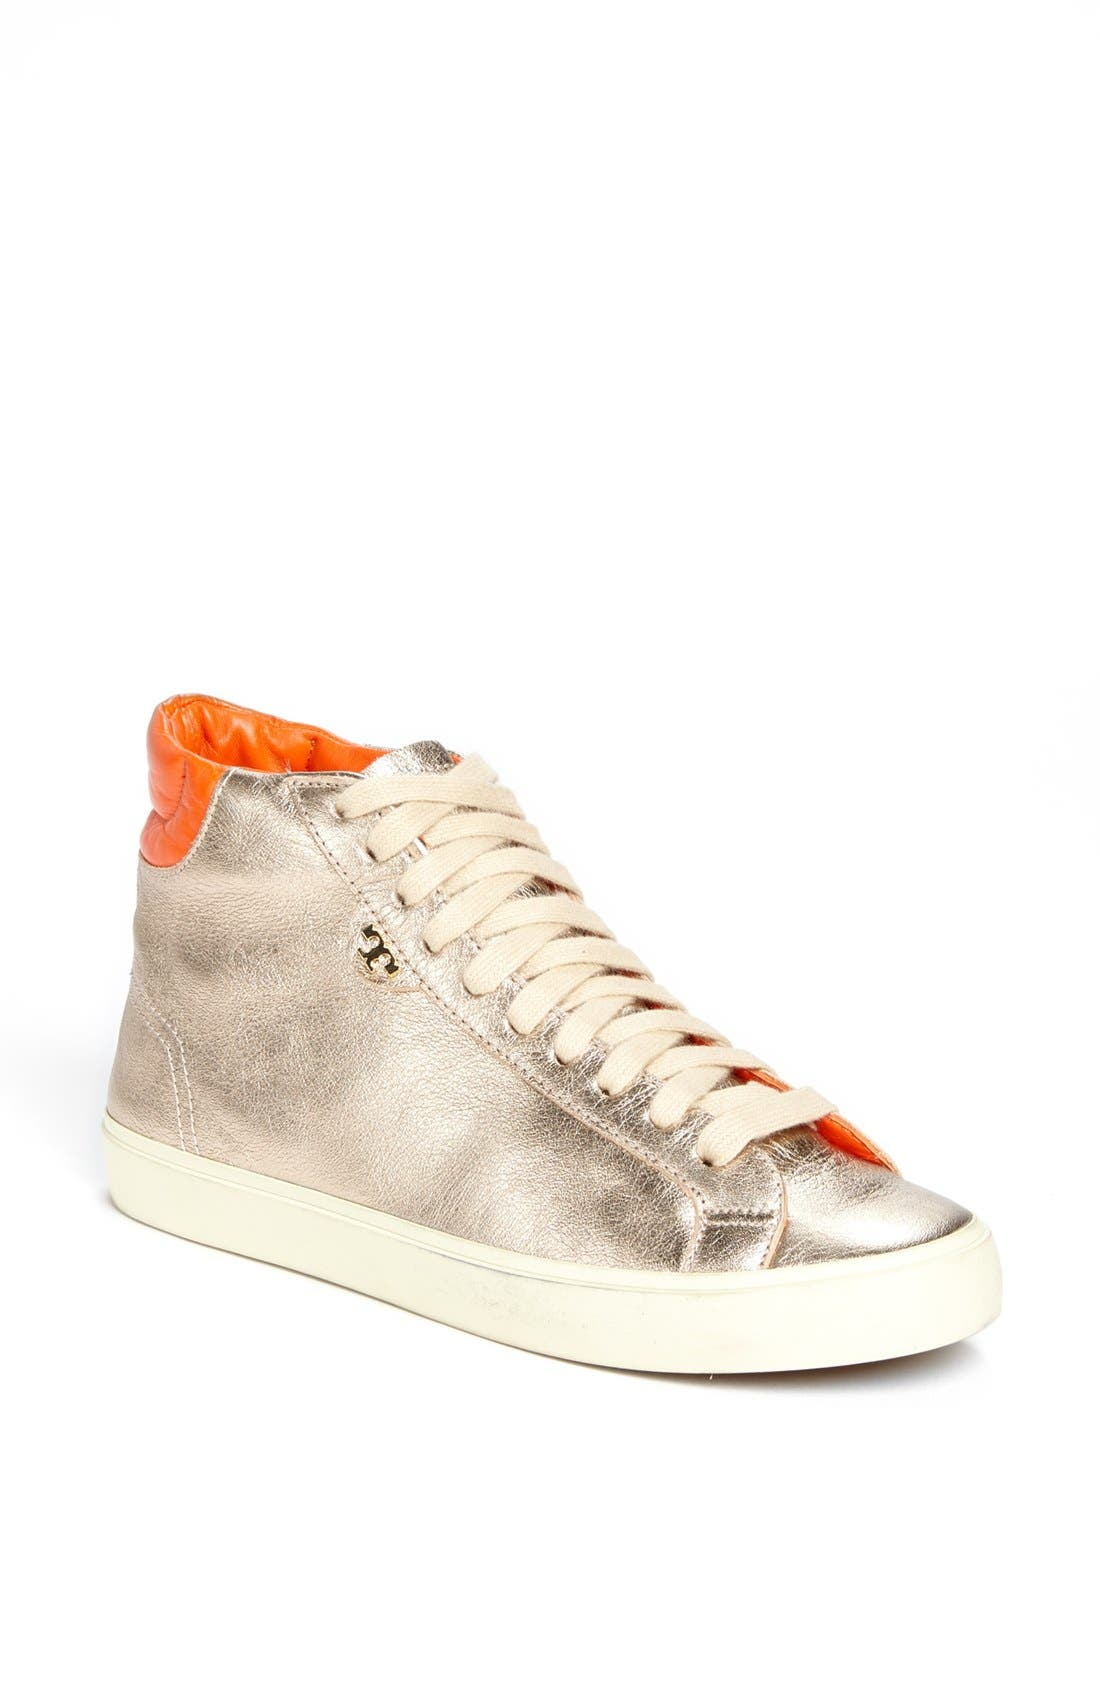 Main Image - Tory Burch 'Caleb' High Top Leather Sneaker